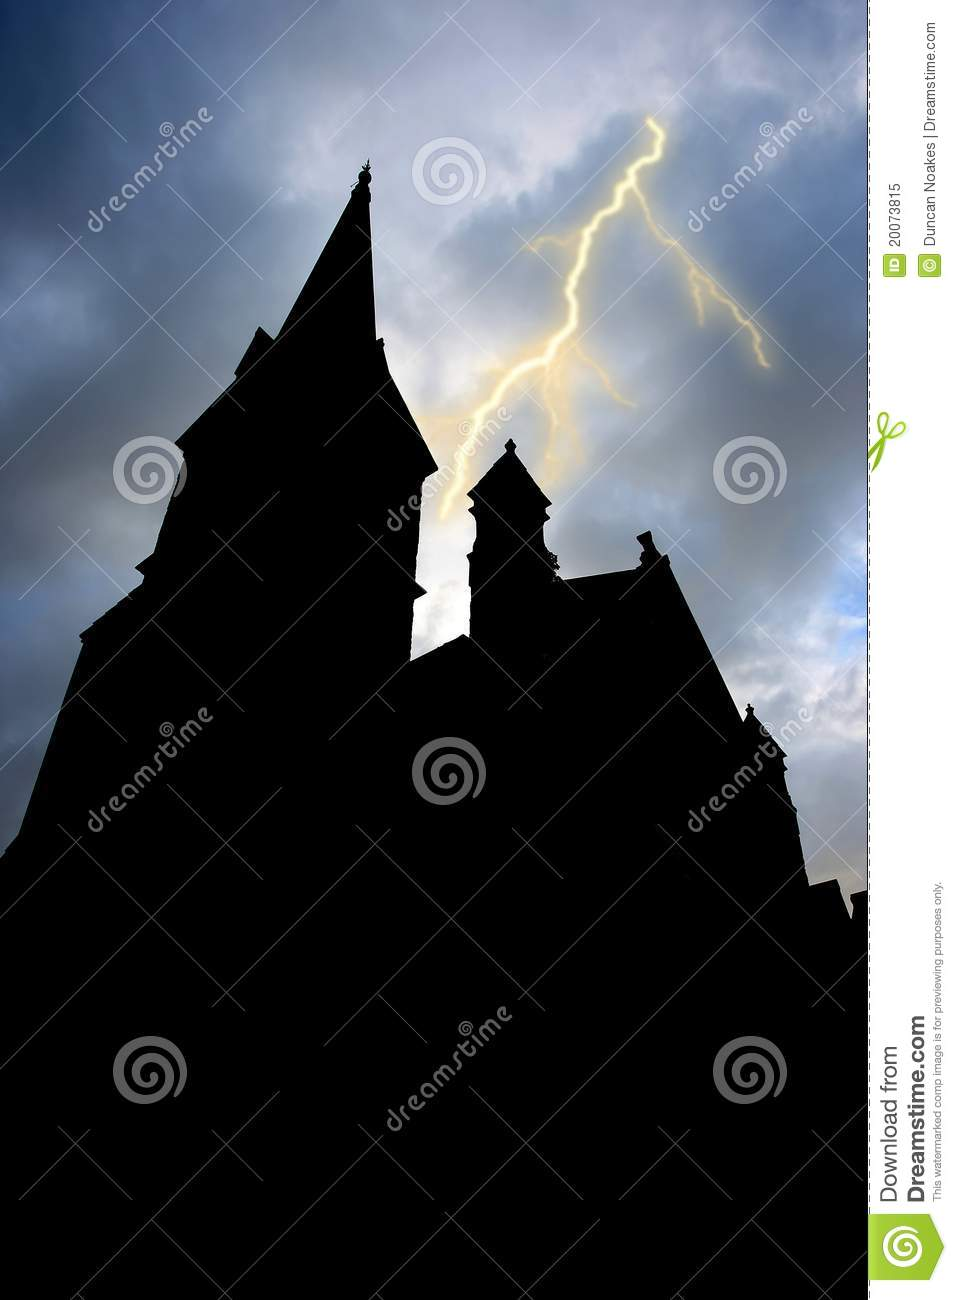 Silhouetted Building and Lightning